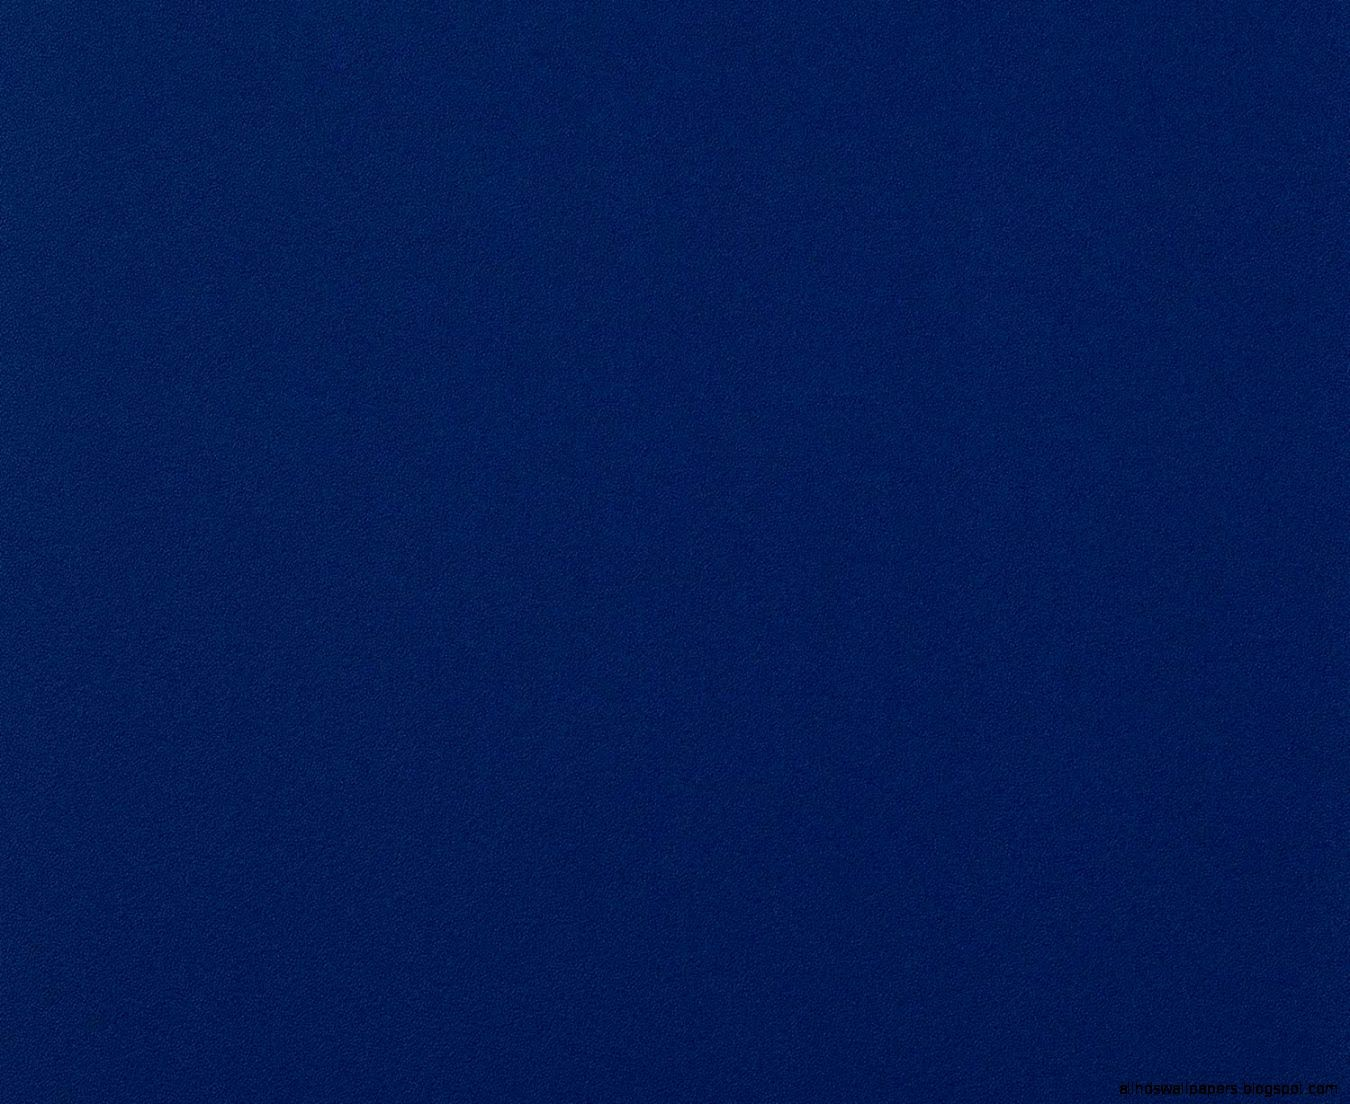 Plain blue wallpaper for android all hd wallpapers for Plain blue wallpaper